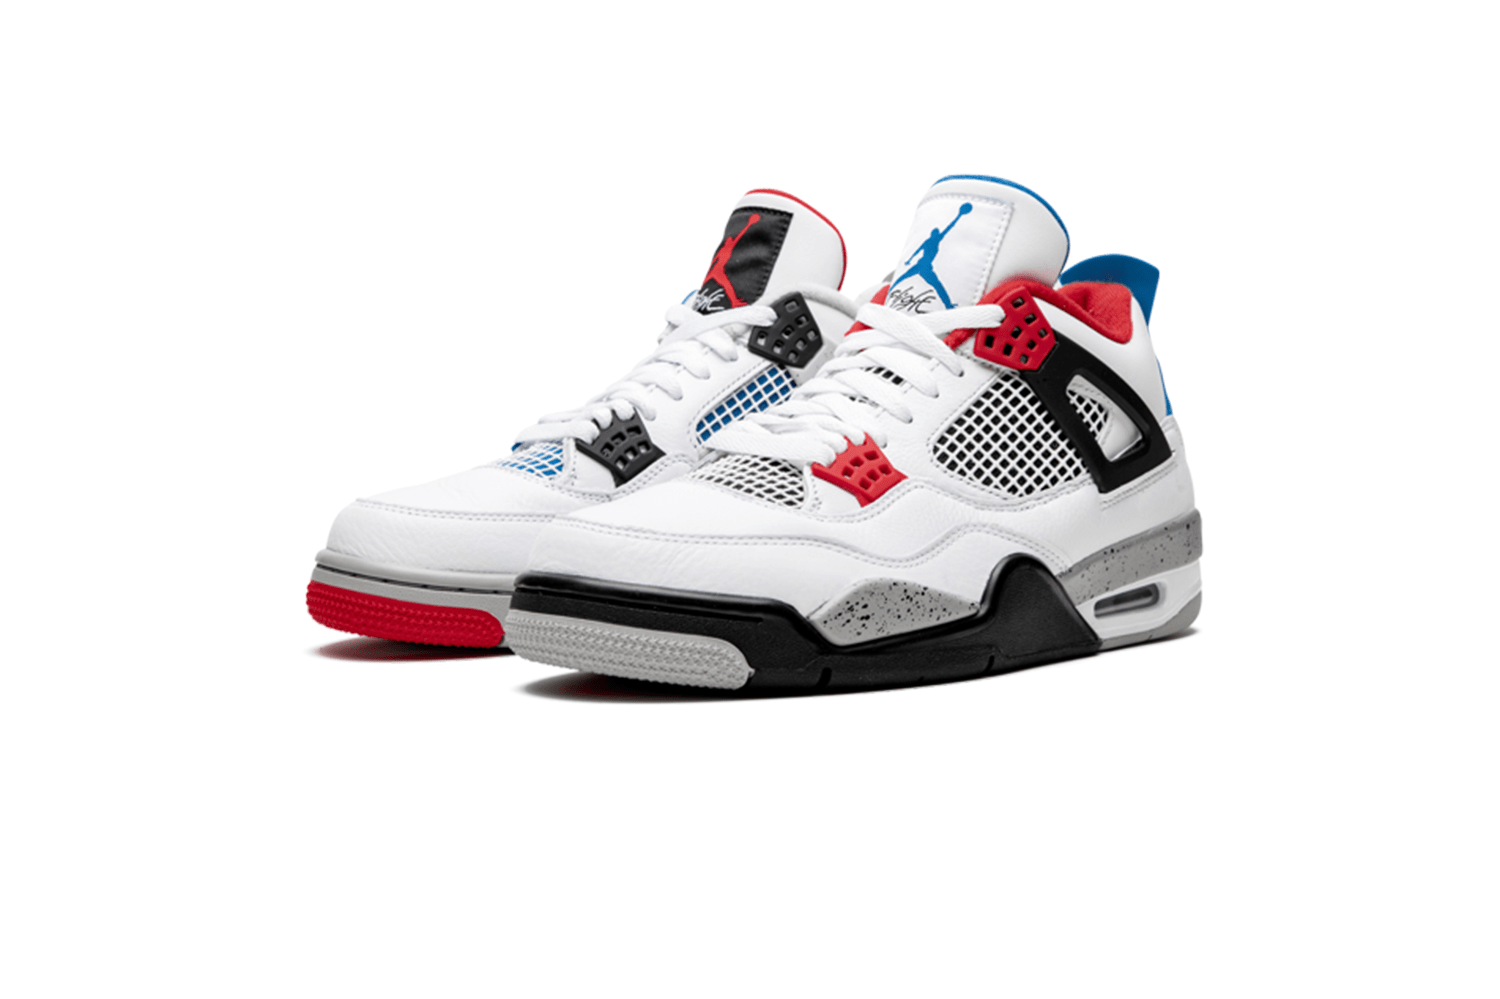 AIR JORDAN 4 RETRO SE 'WHAT THE' - CI1184-146 MENS FOOTWEAR JORDAN